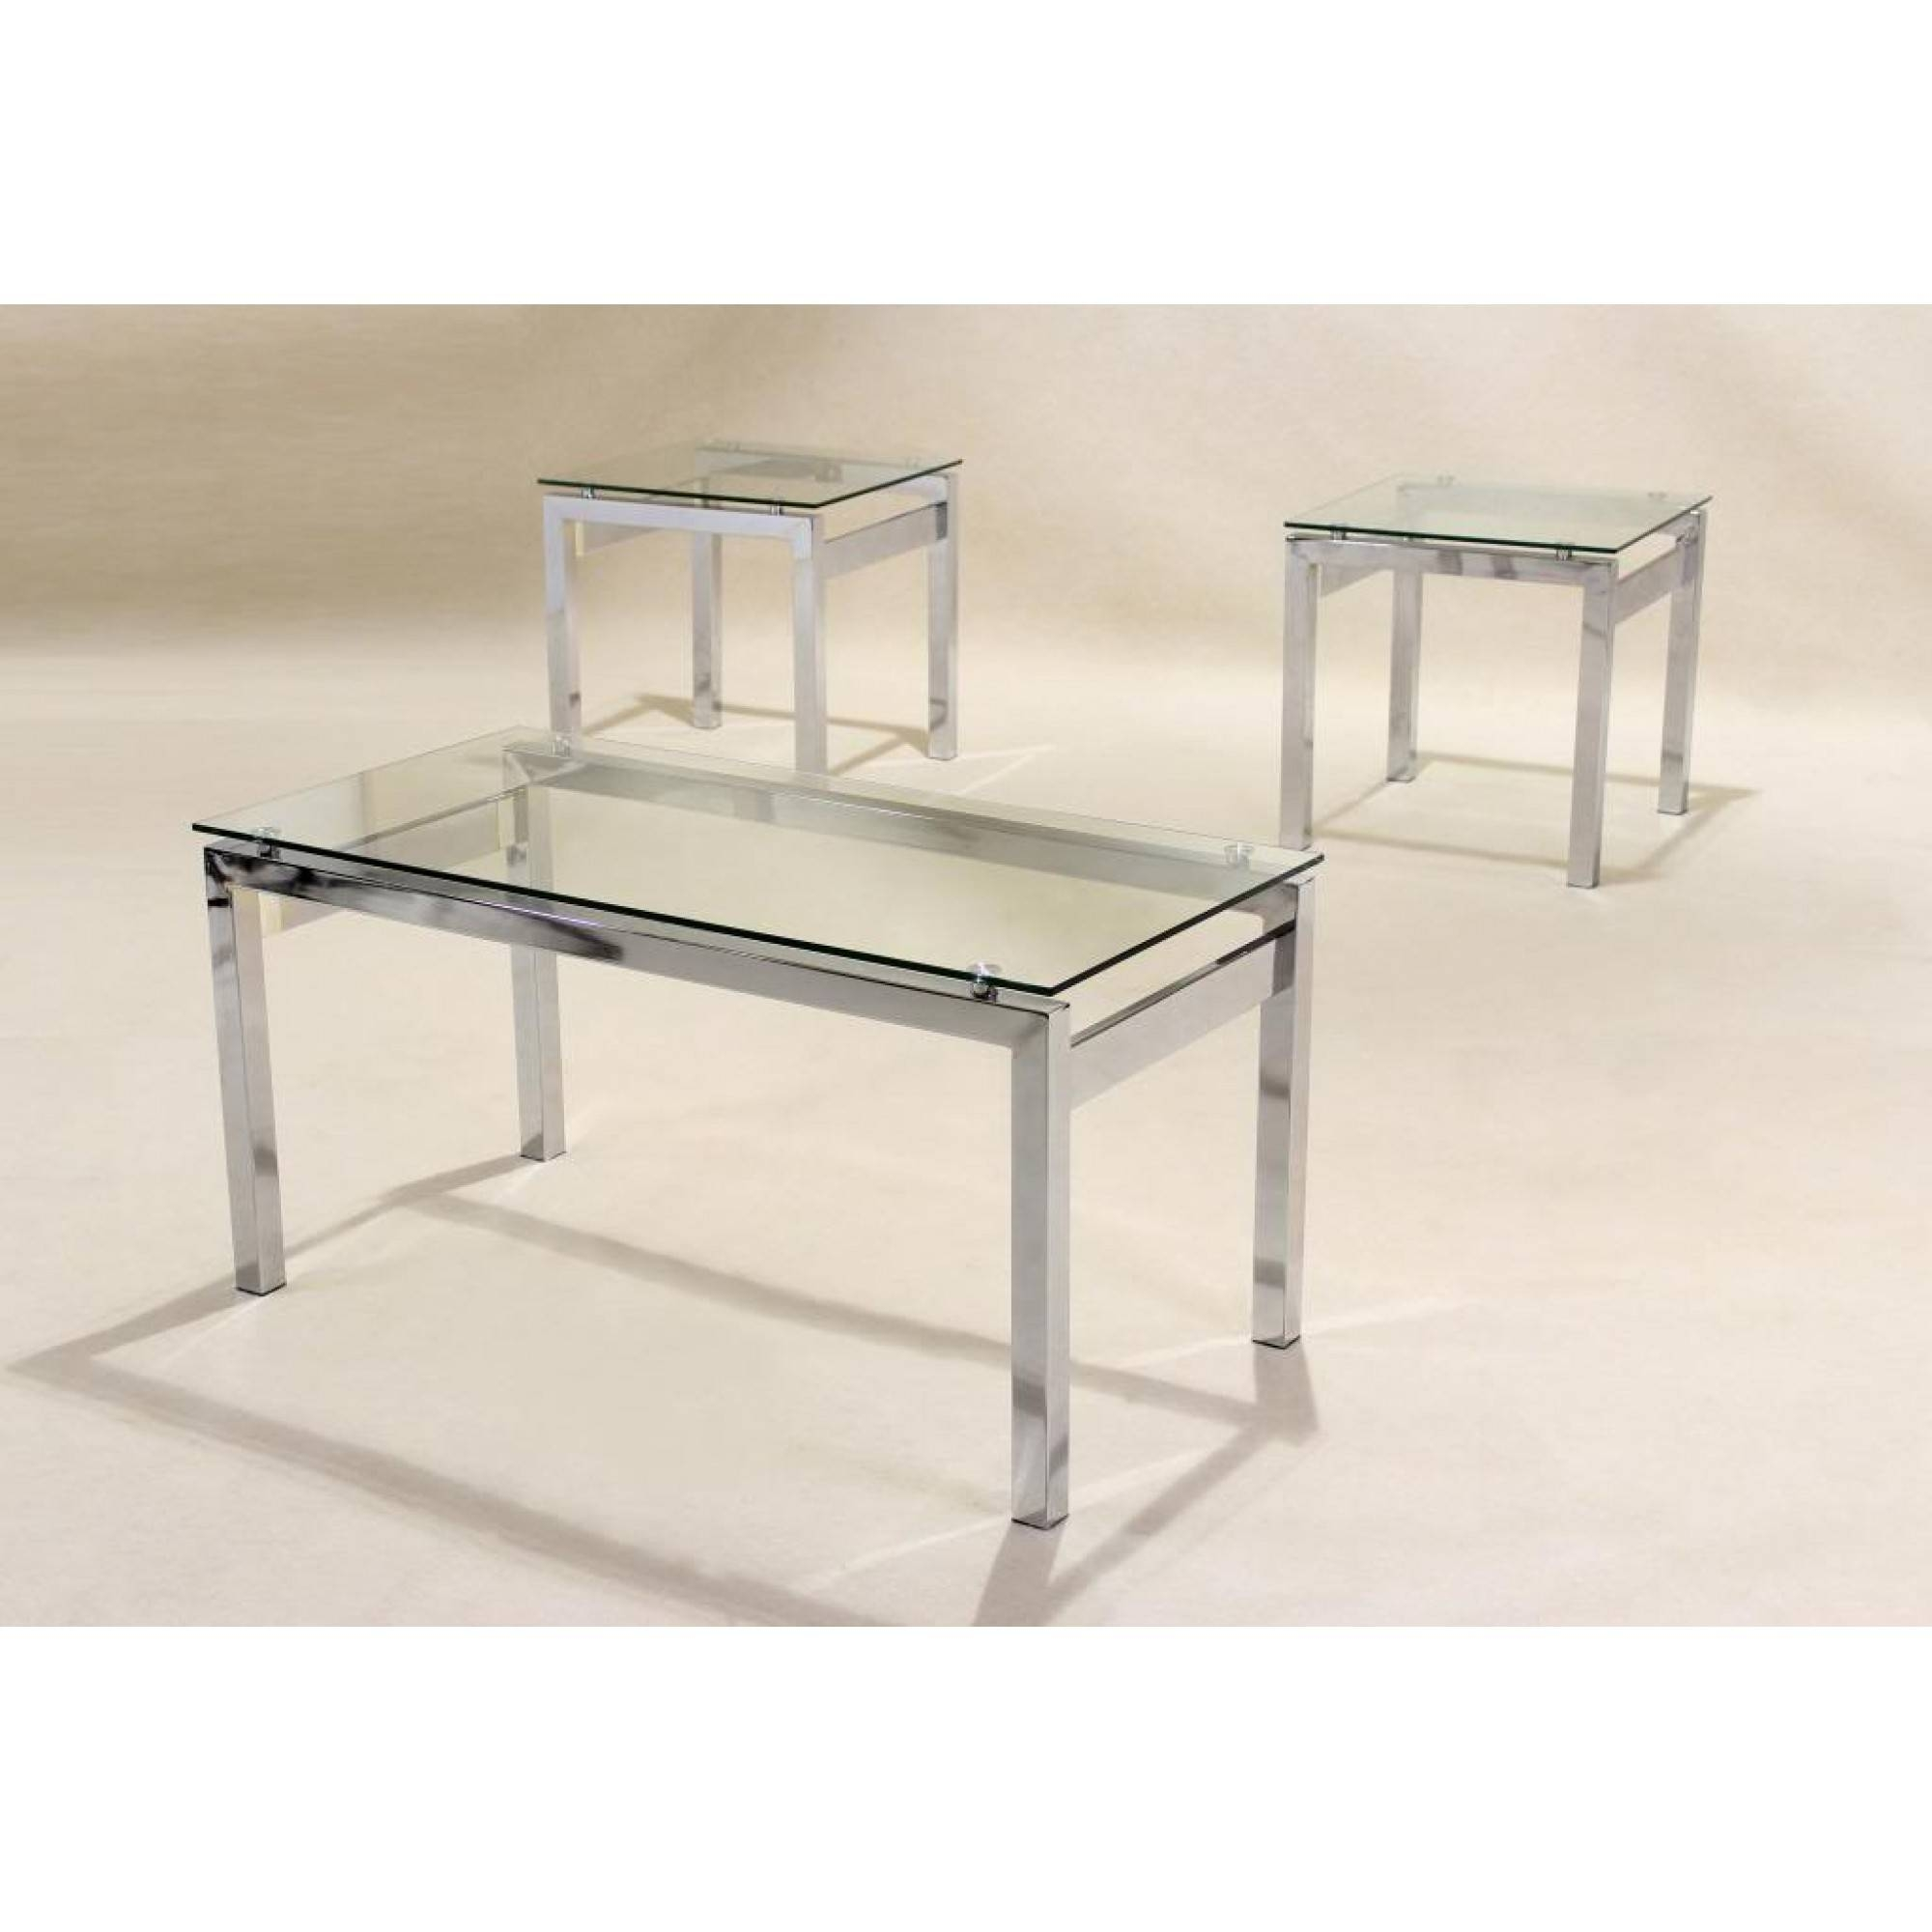 Furniture Glass And Chrome Coffee Table Ideas: Silver Rectangle within Rectangle Glass Chrome Coffee Tables (Image 22 of 30)